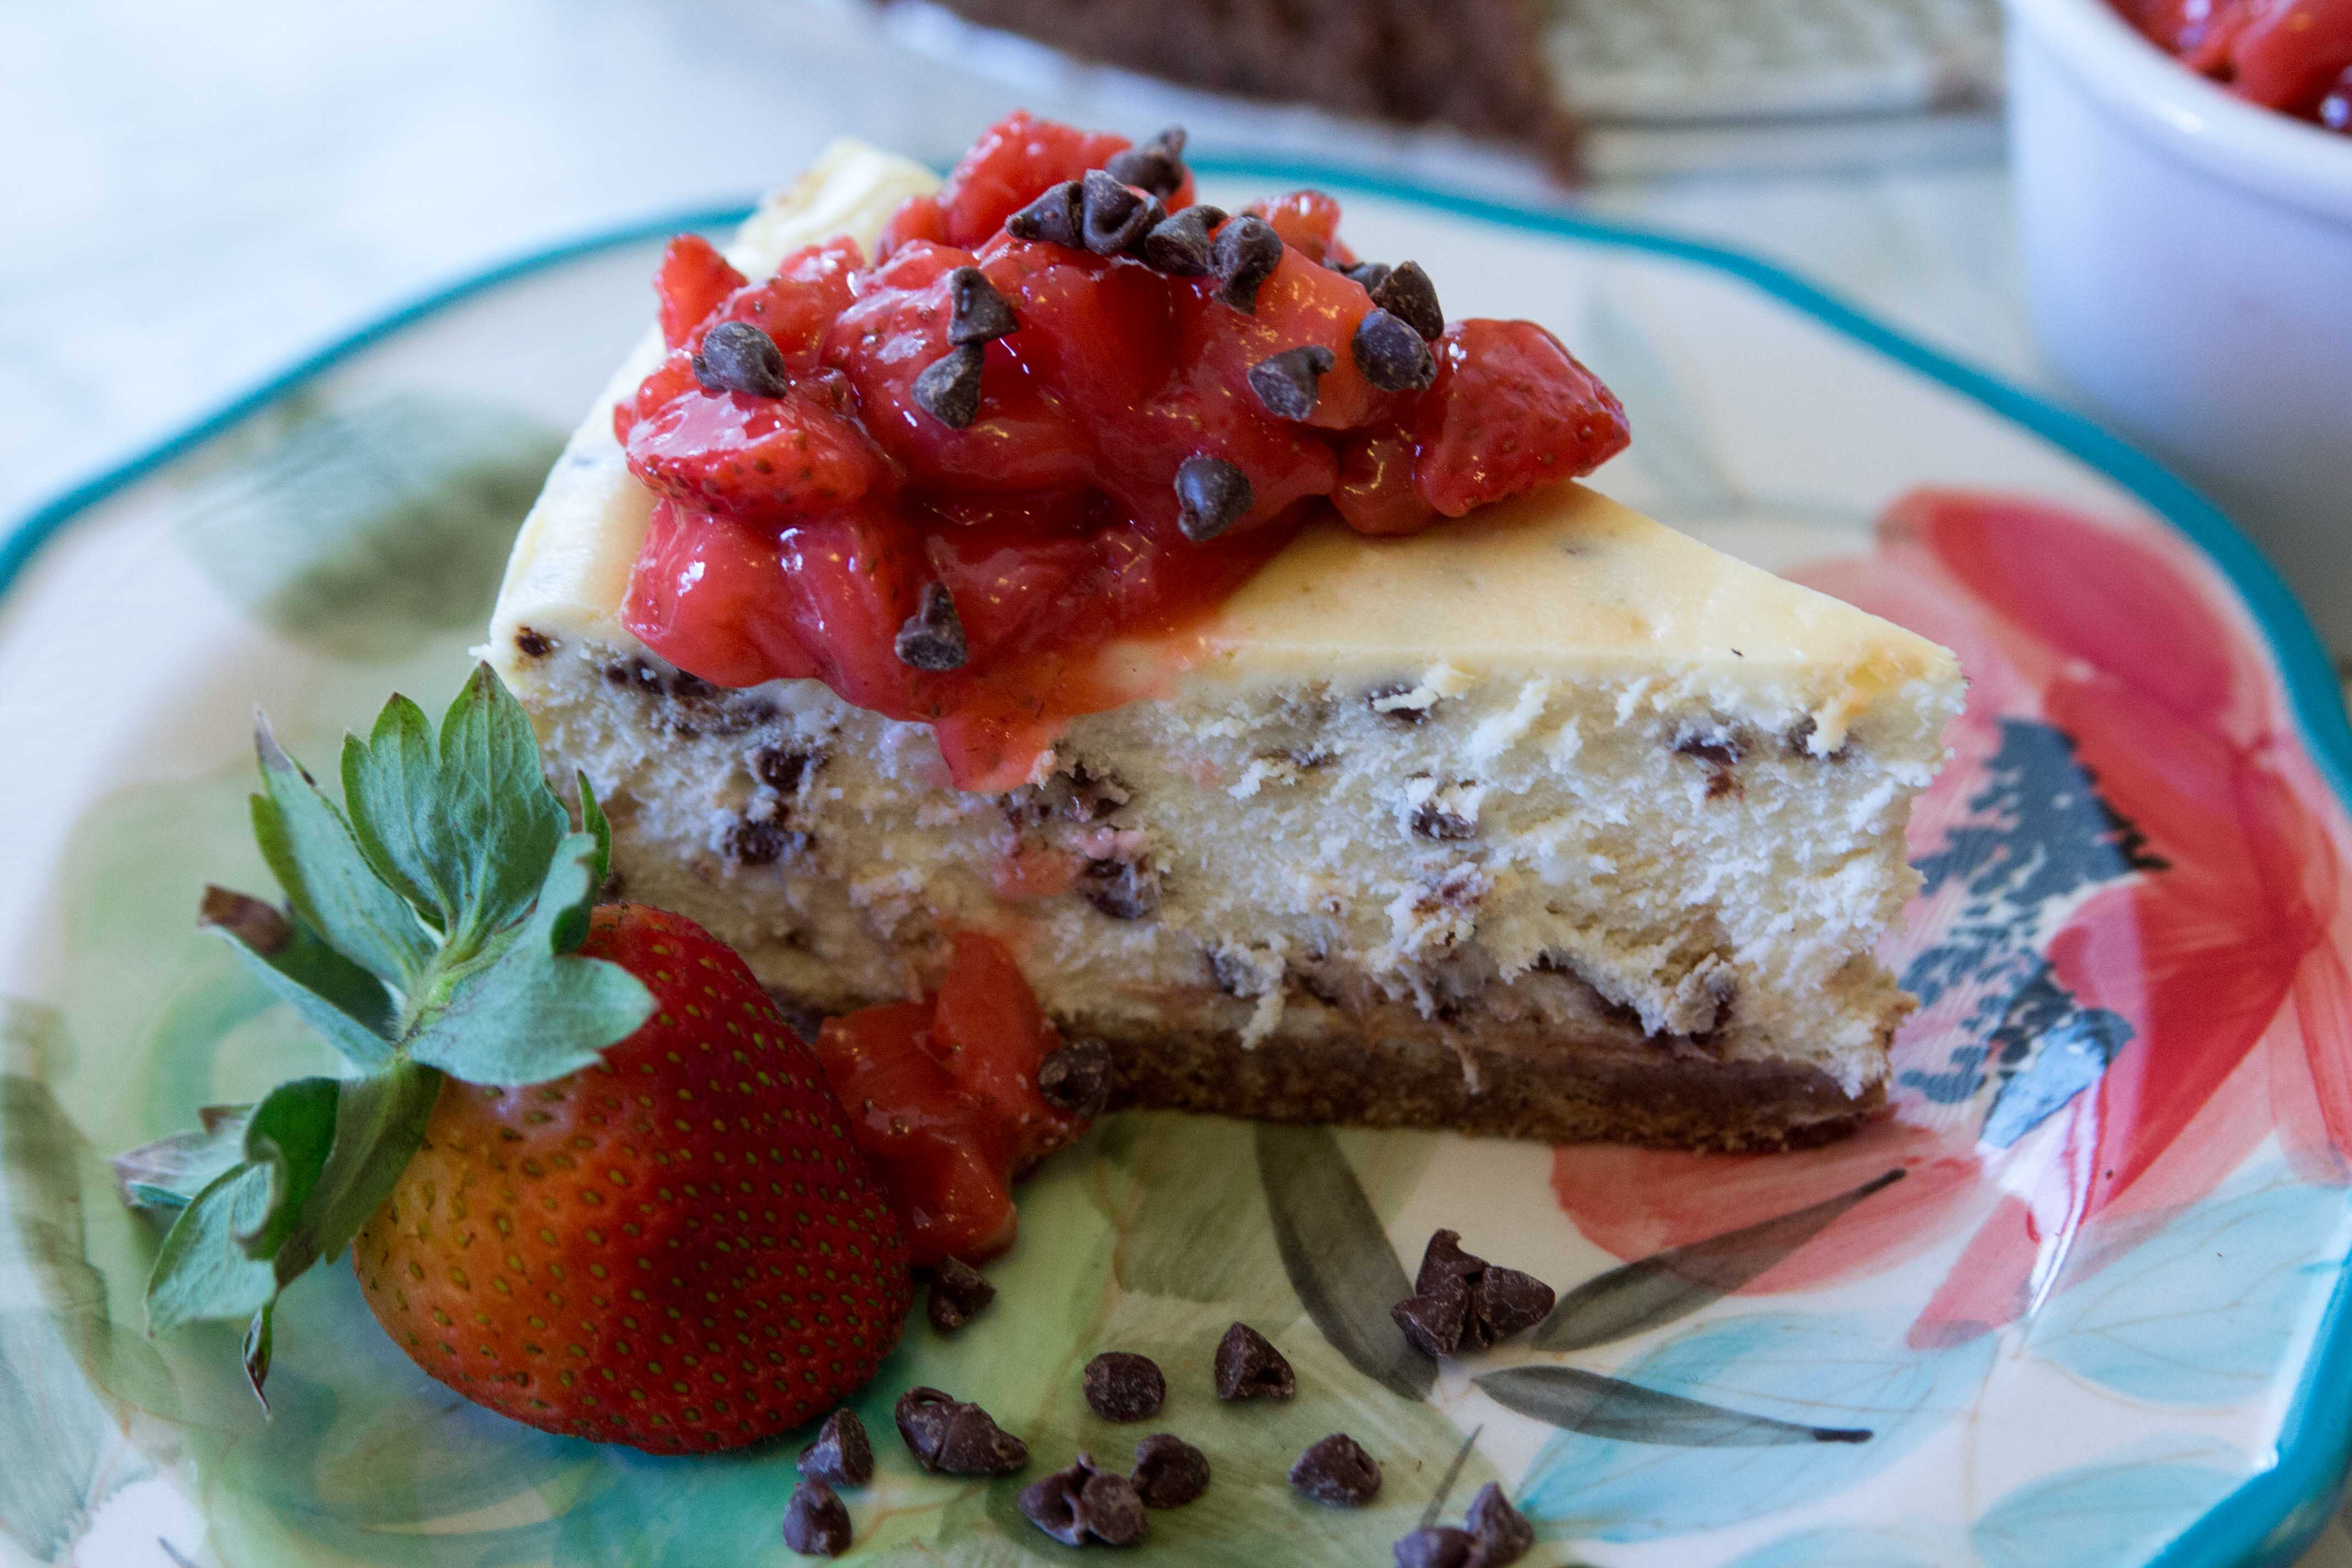 Chocolate Chip Cheesecake with Strawberry Compote Topping